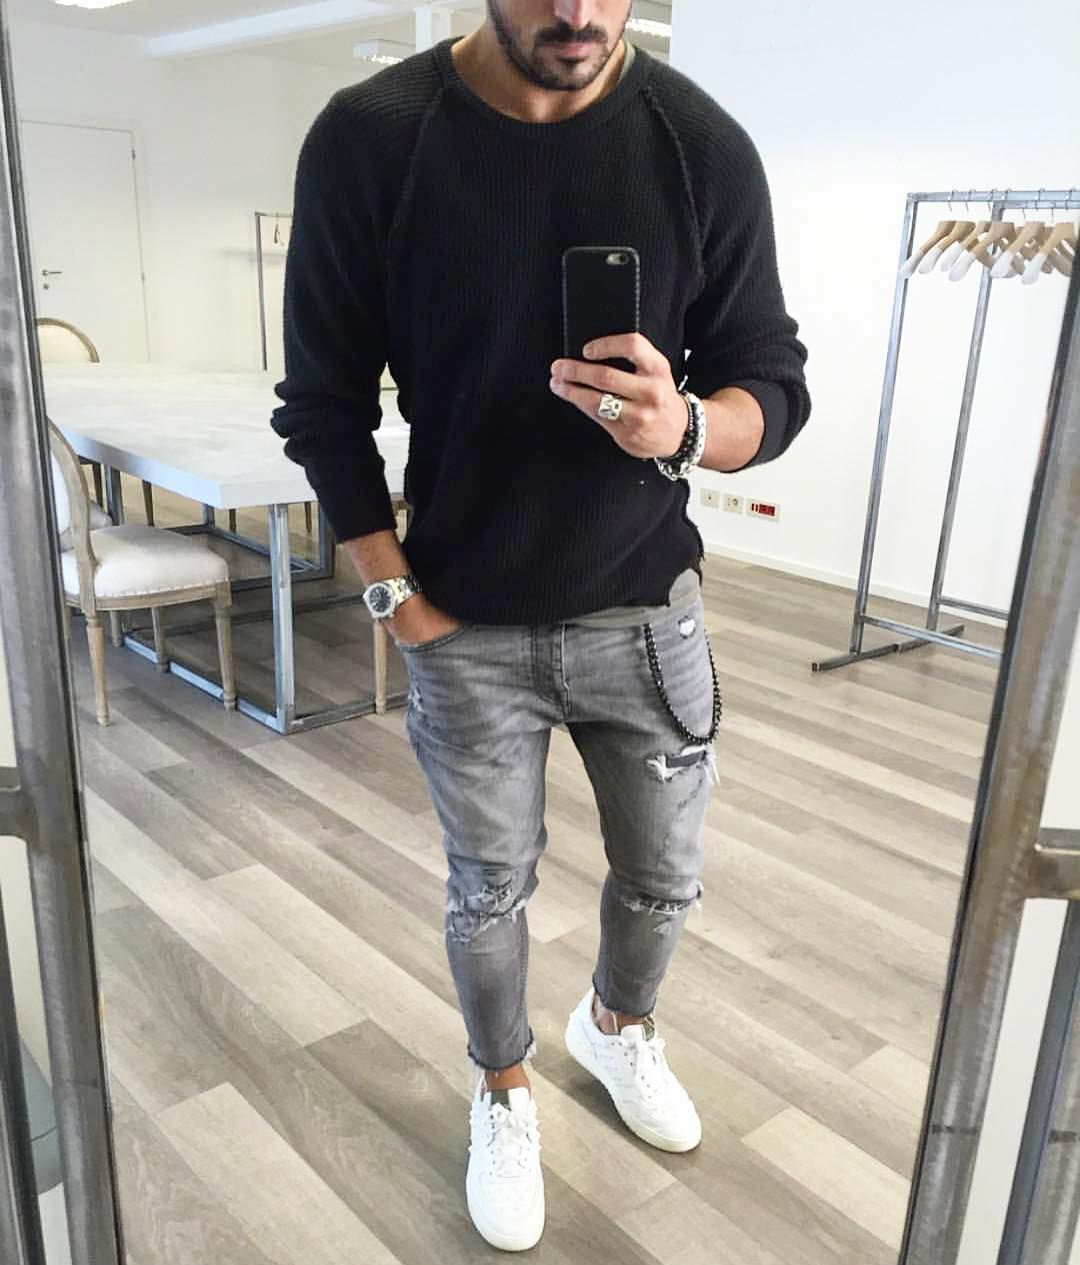 Men 39 S Fashion Instagram Page Men 39 S Fashion Clothes And Man Style